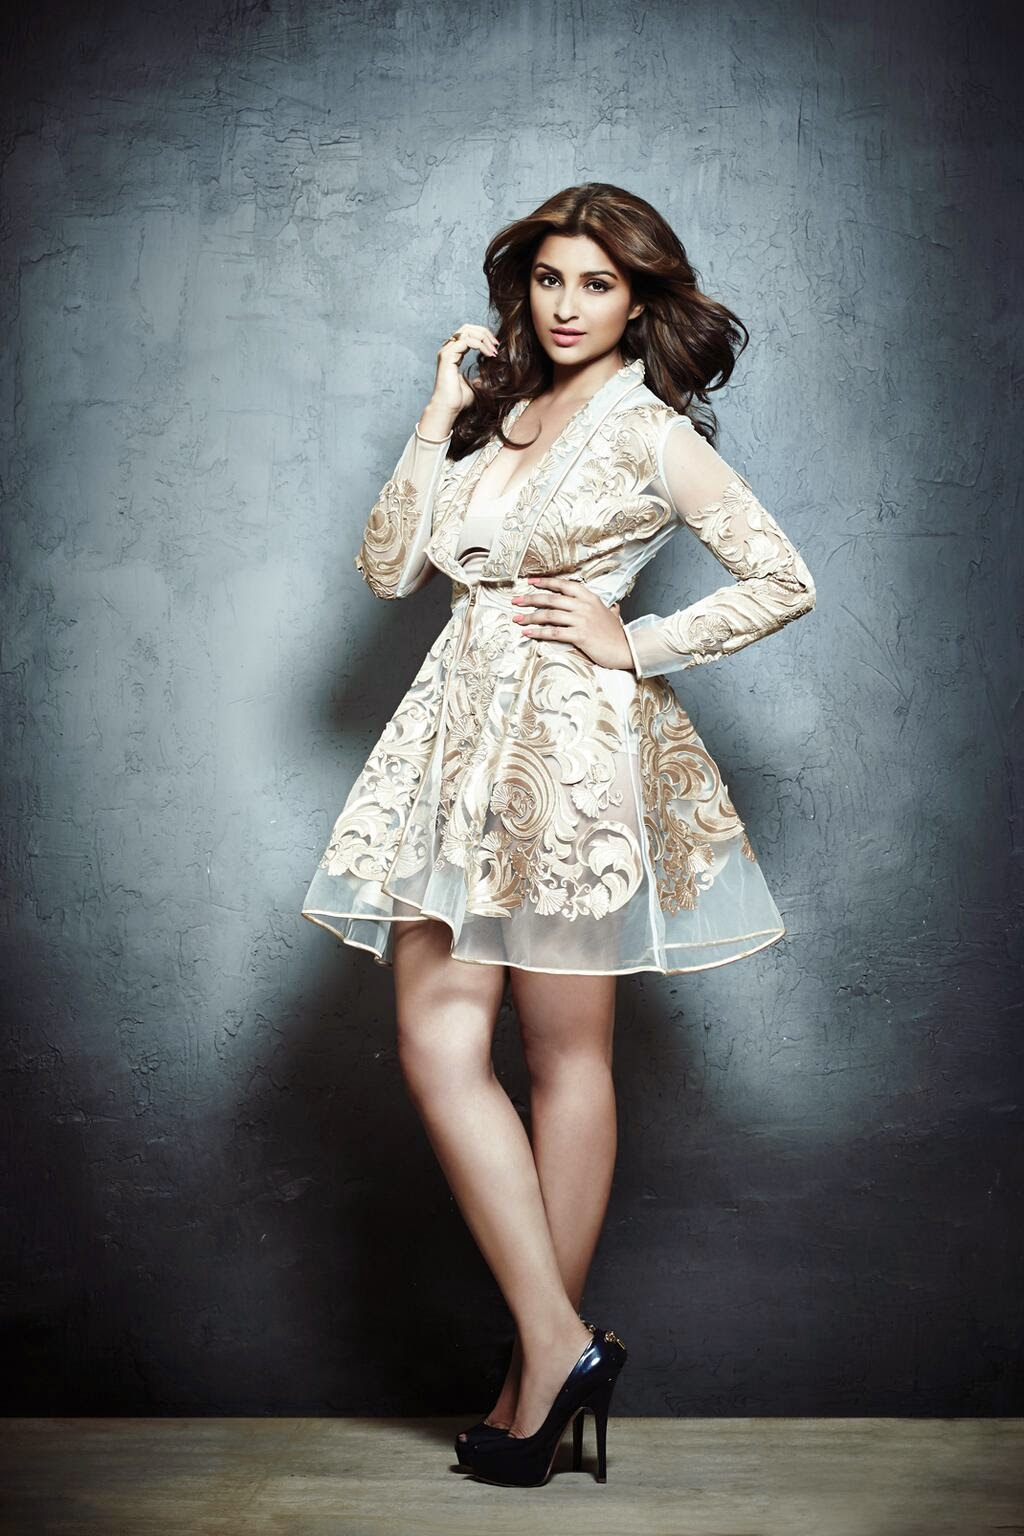 Parineeti-Chopra-in-white-see-through-mini-dress-showing-long-legs